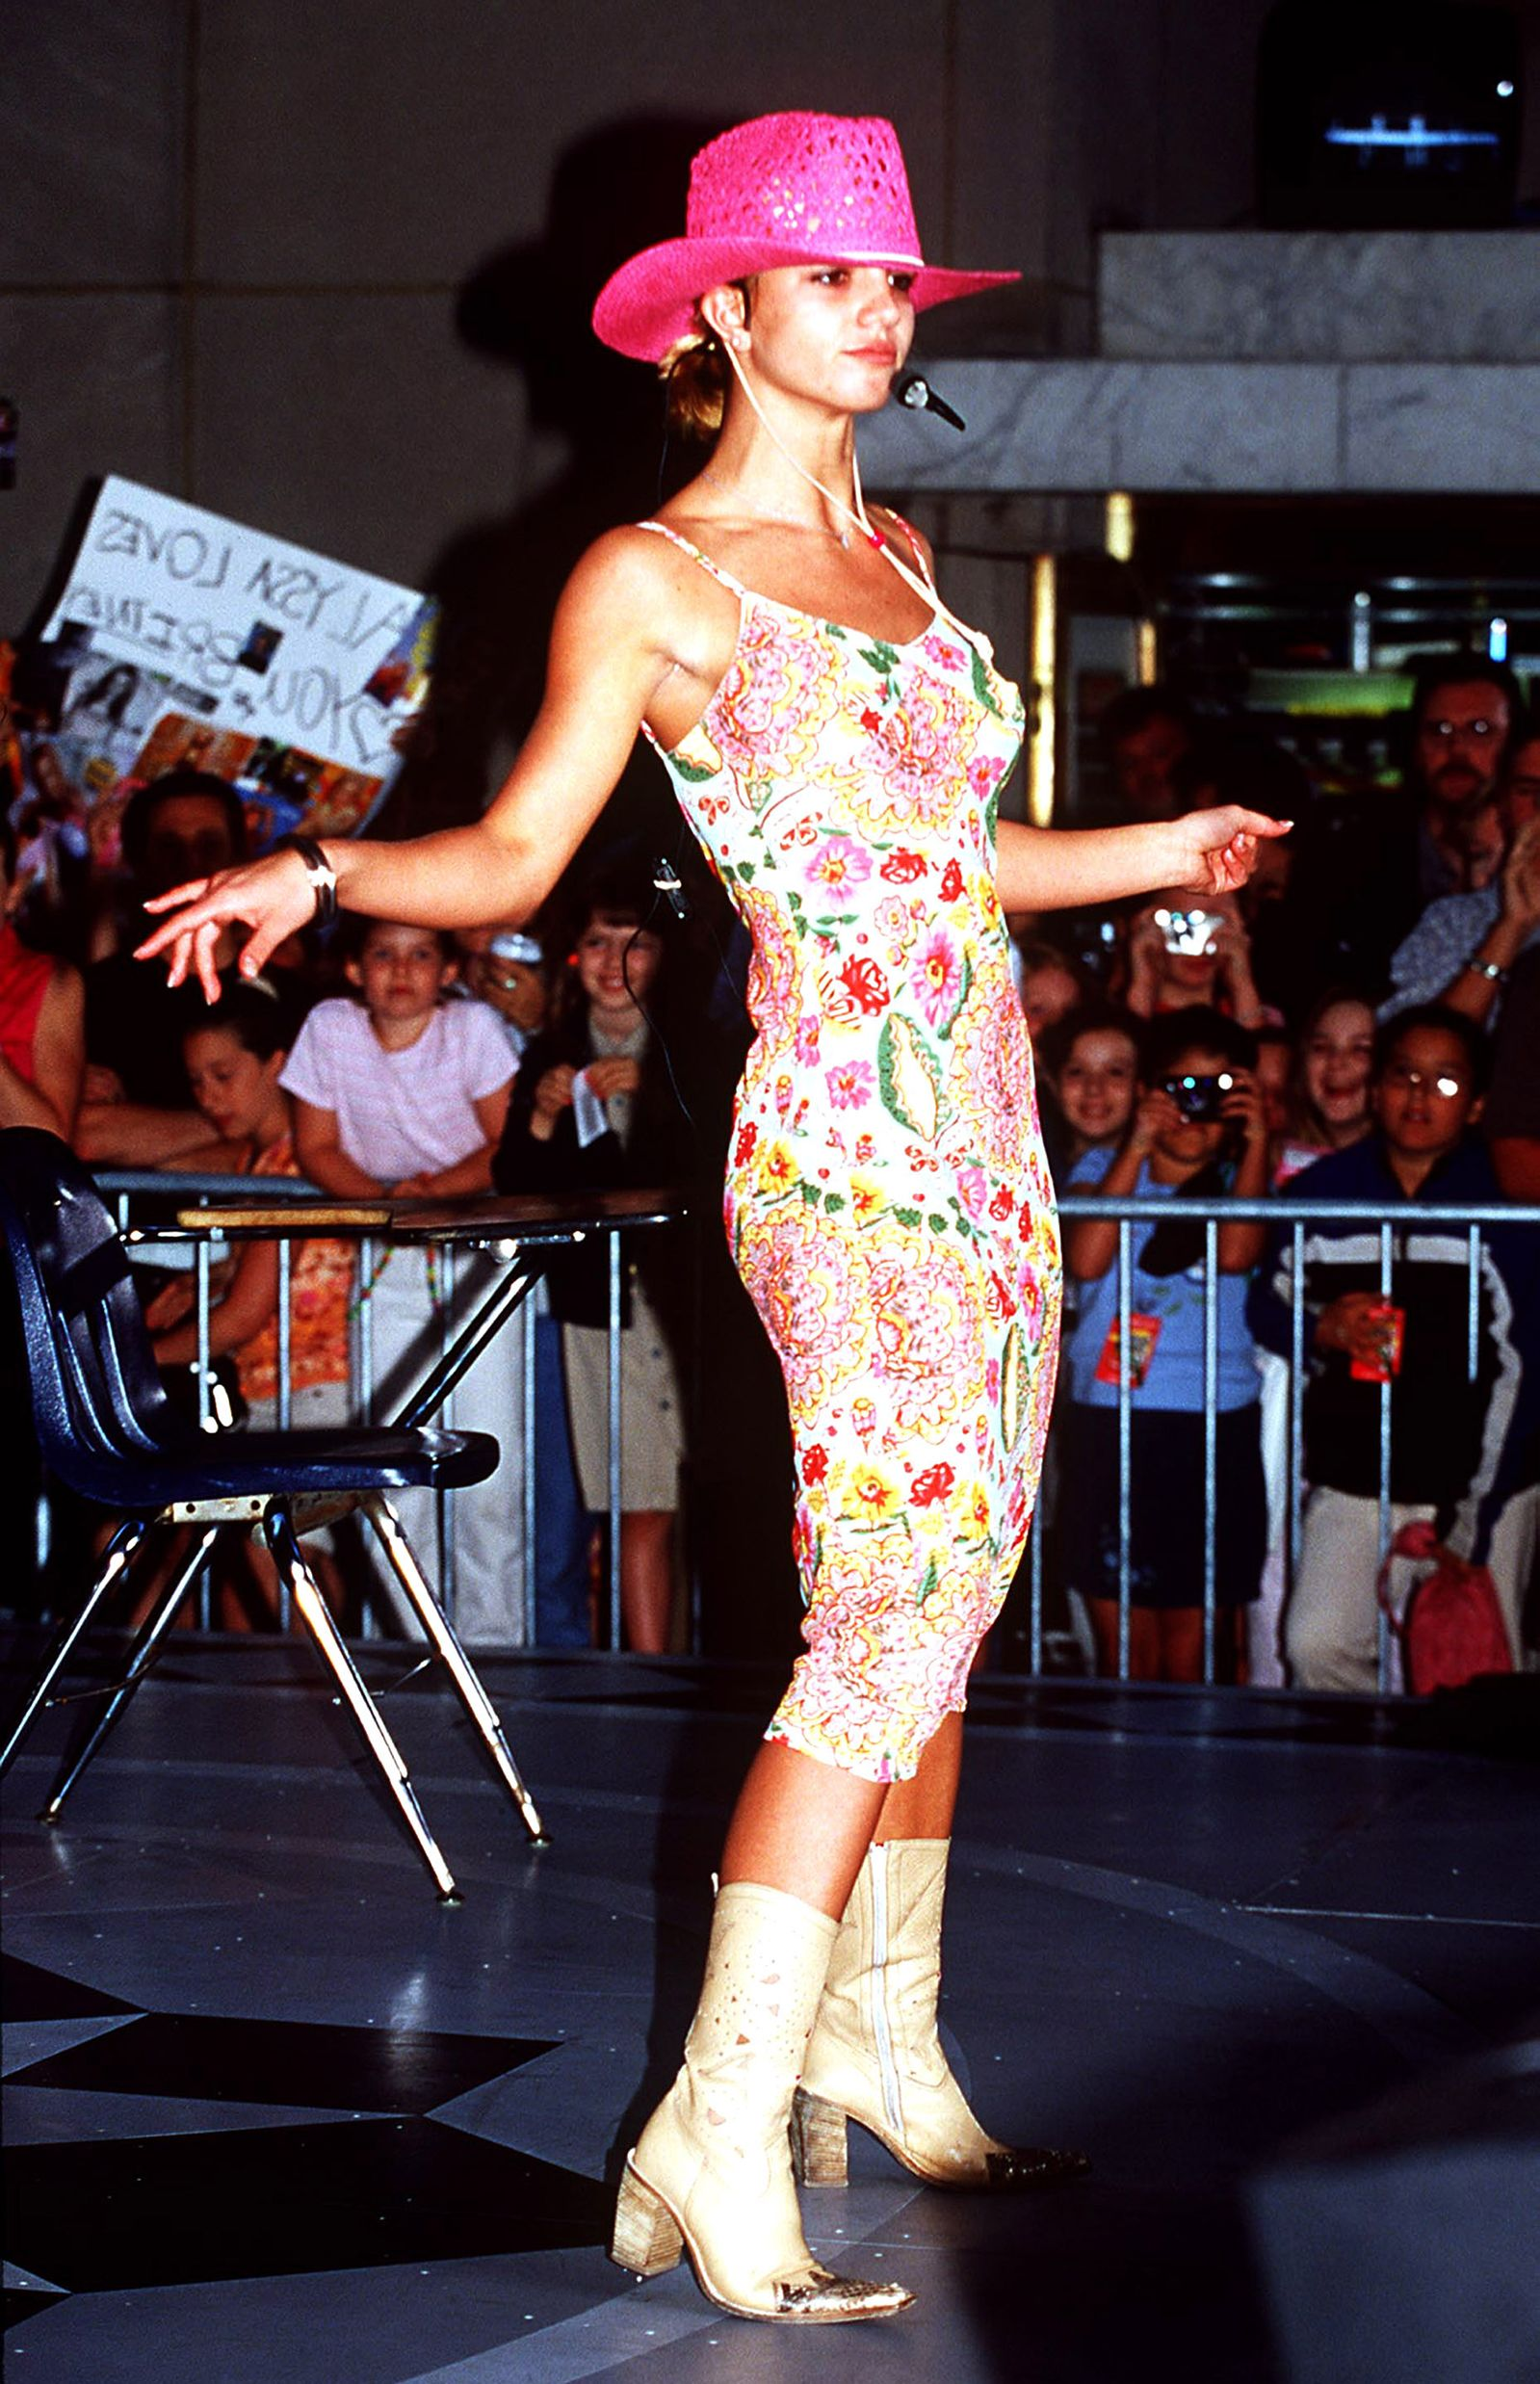 af0d949eb11 Britney Spears  90s Fashion — Britney Spears Style Photos